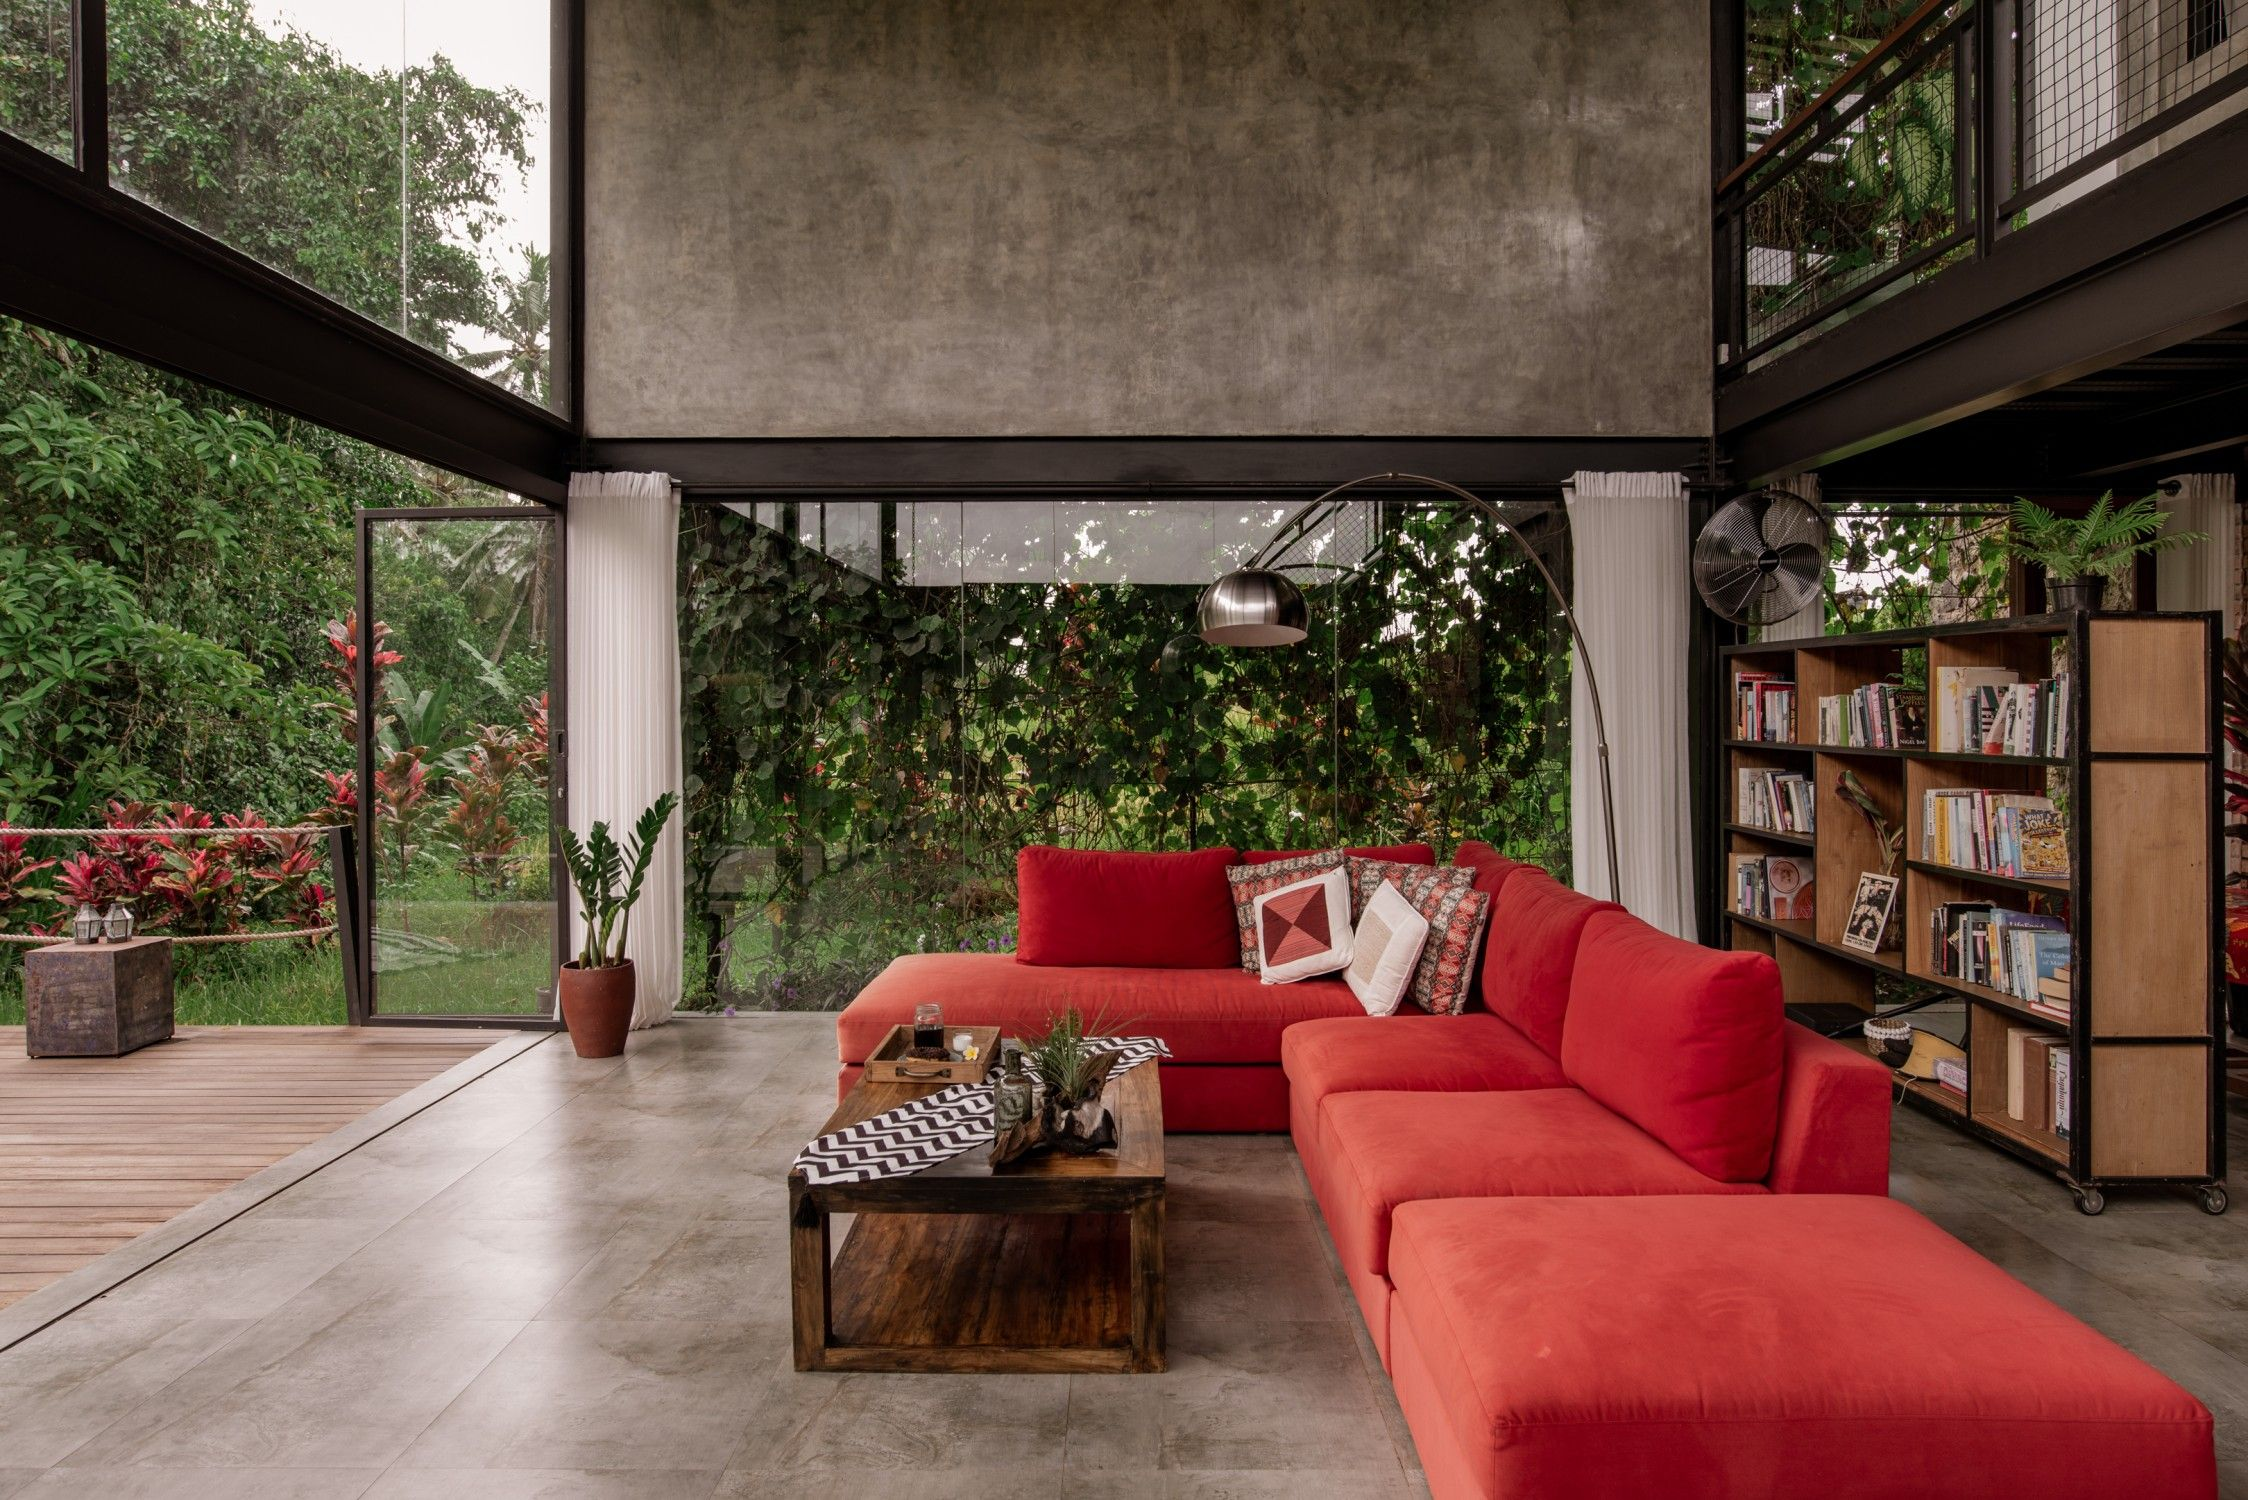 Casa Depto Entero En Ubud Indonesia Experience The Charm Of Tropical Living Lifestyle From This Modern L Tropical House Design House Design Tropical Living